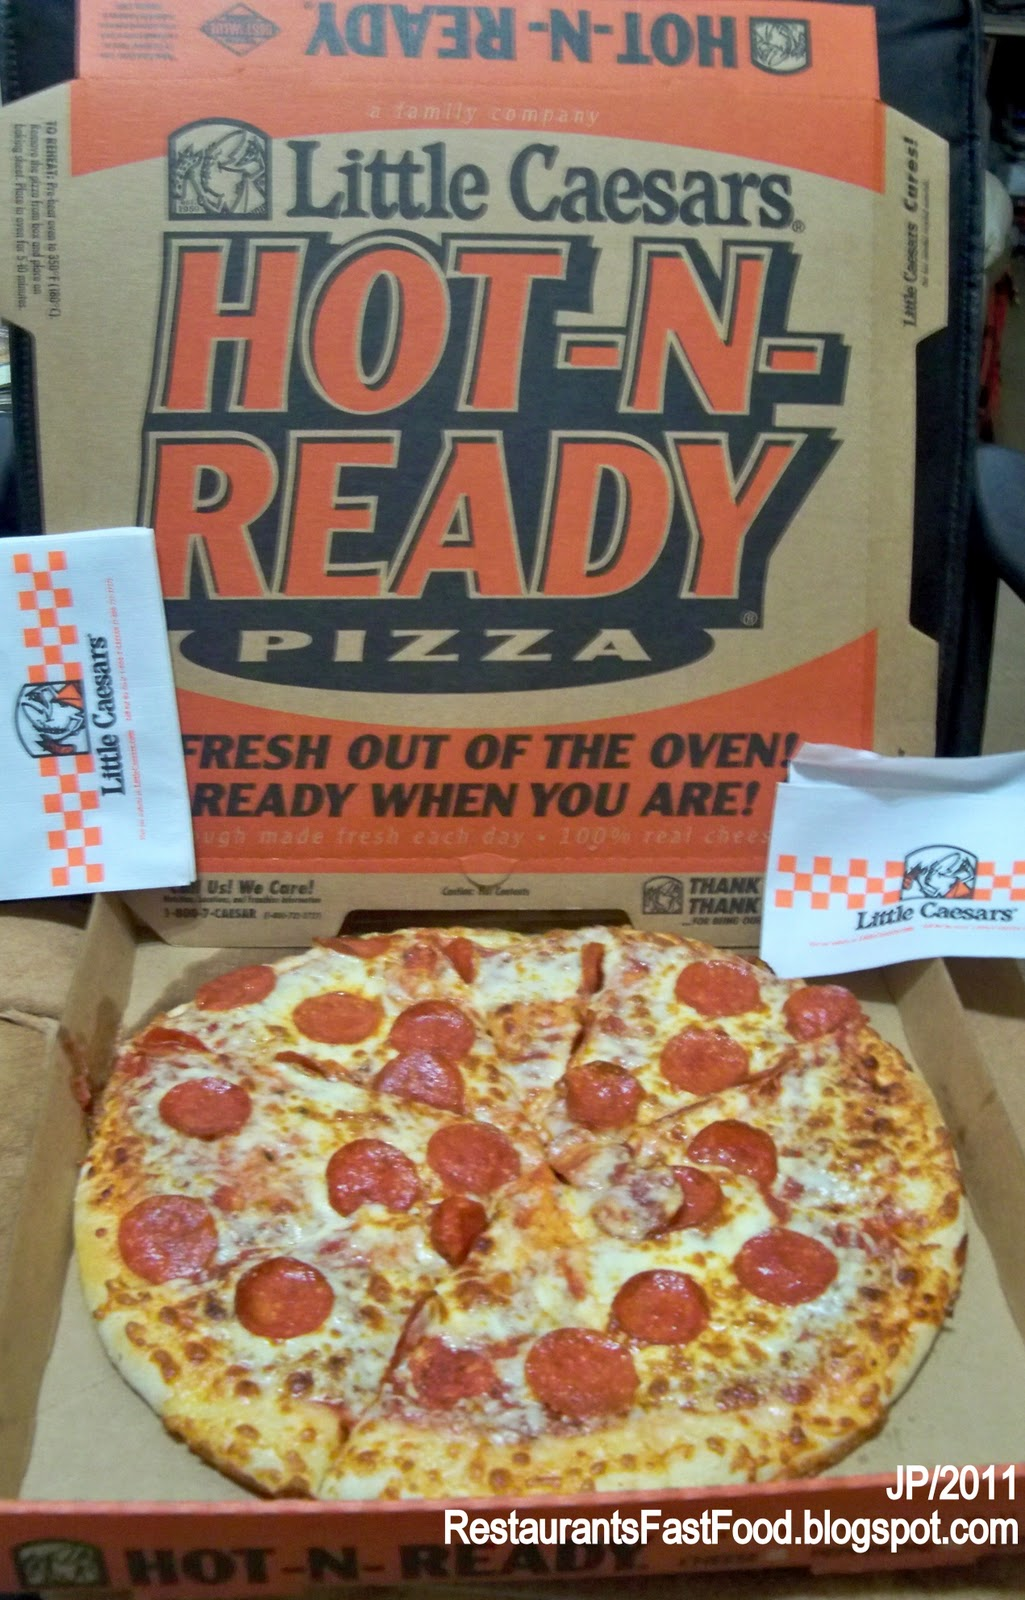 restaurant fast food menu mcdonald s dq bk hamburger pizza mexican little caesars hollywood florida hot n ready take out pizza kmart station 3800 oakwood blvd hollywood fl 33020 kmart pizza station hollywood fl